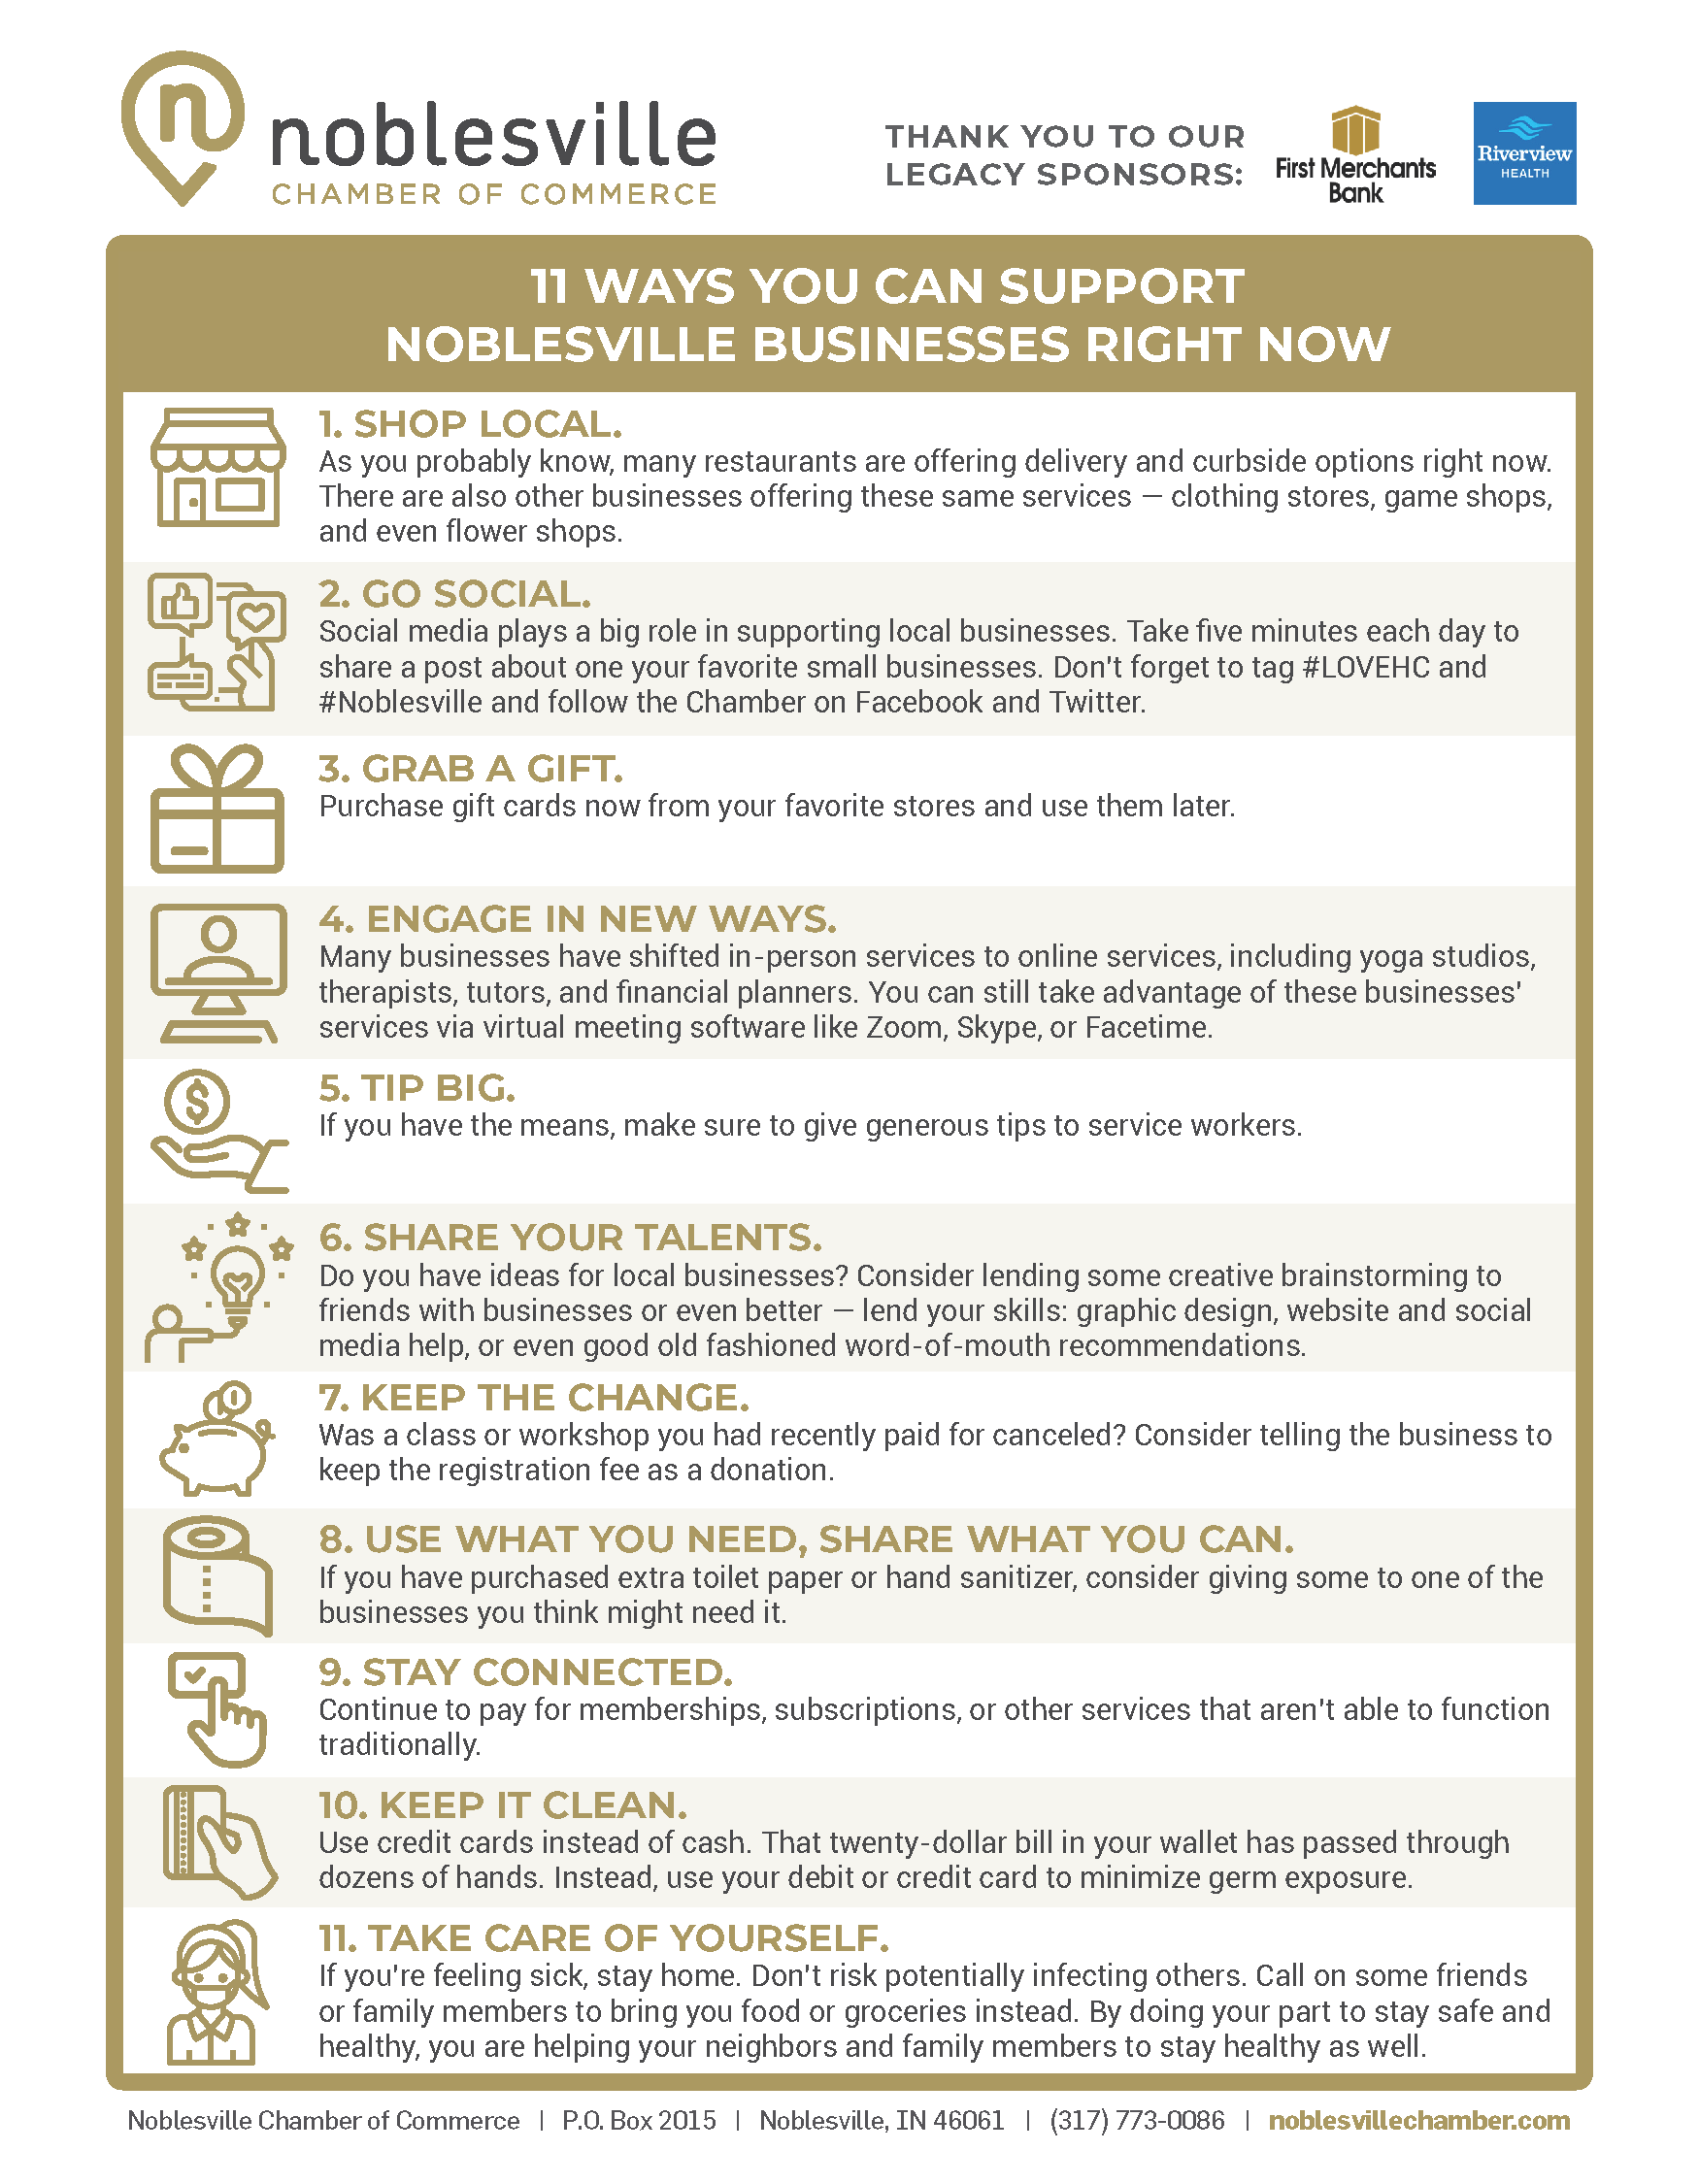 11 Things You Can Do Now